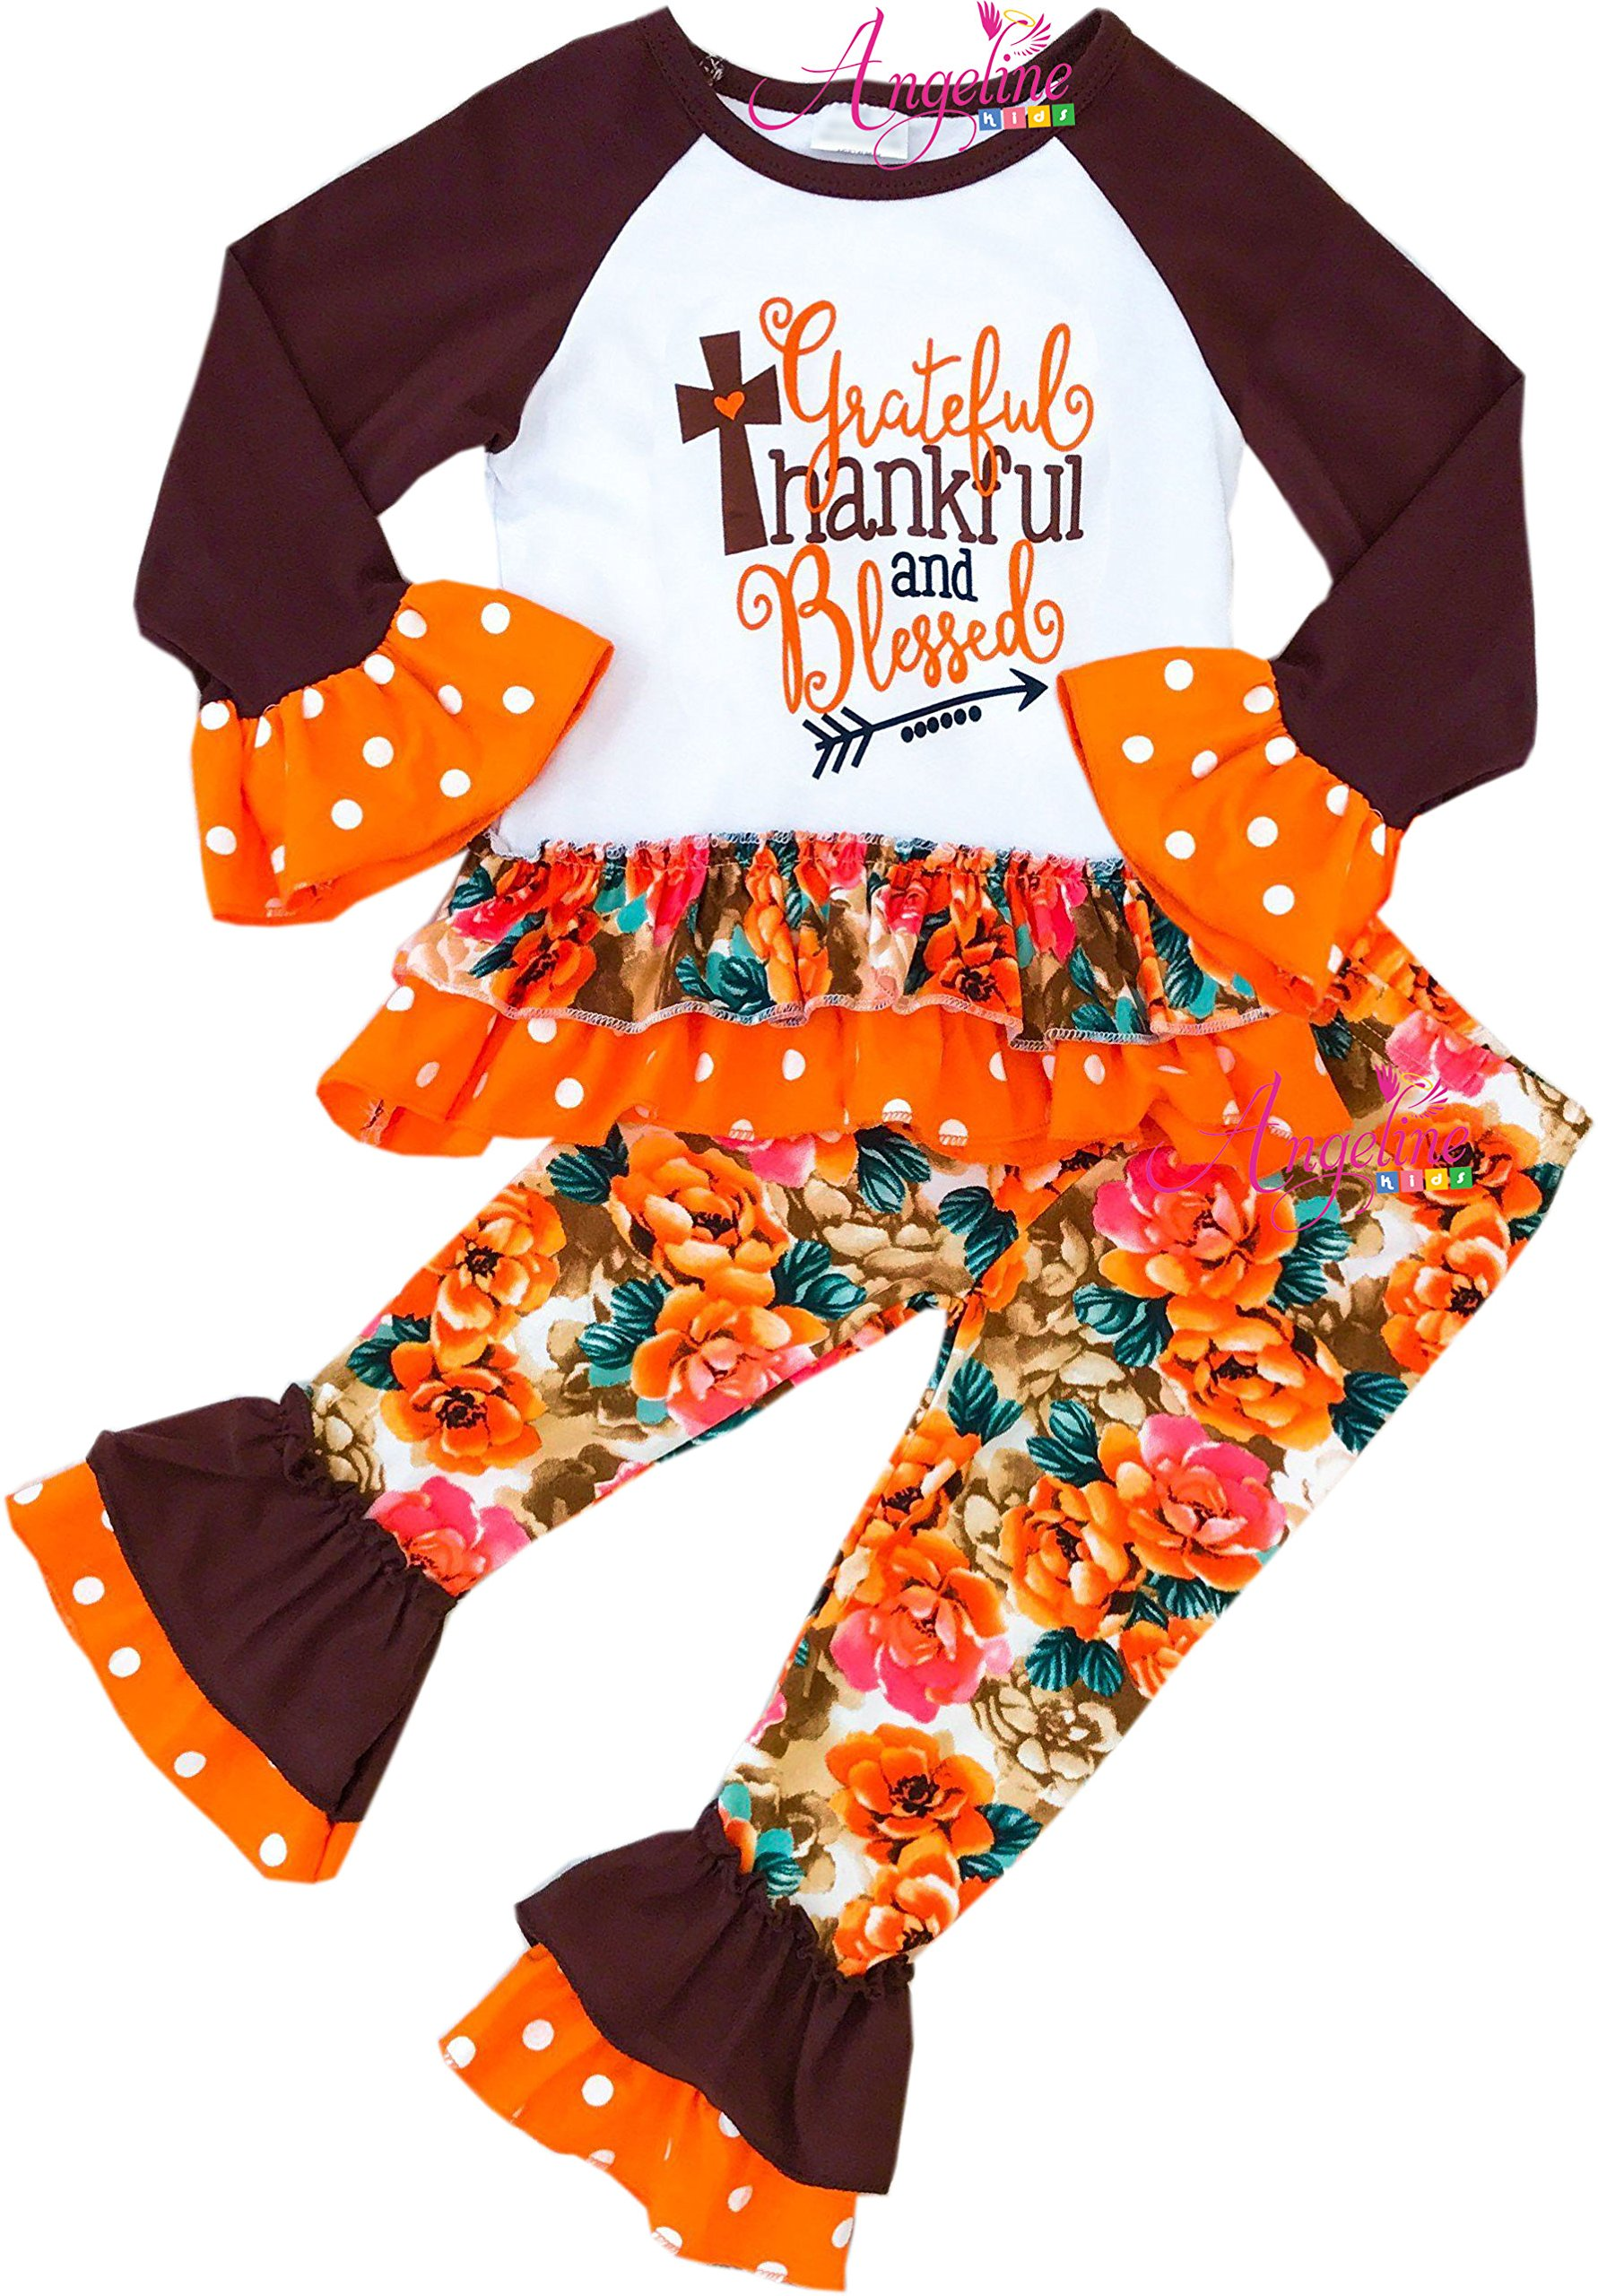 Boutique Clothing Girls Thanksgiving Thankful Grateful and Blessed Pant Set 3T/M